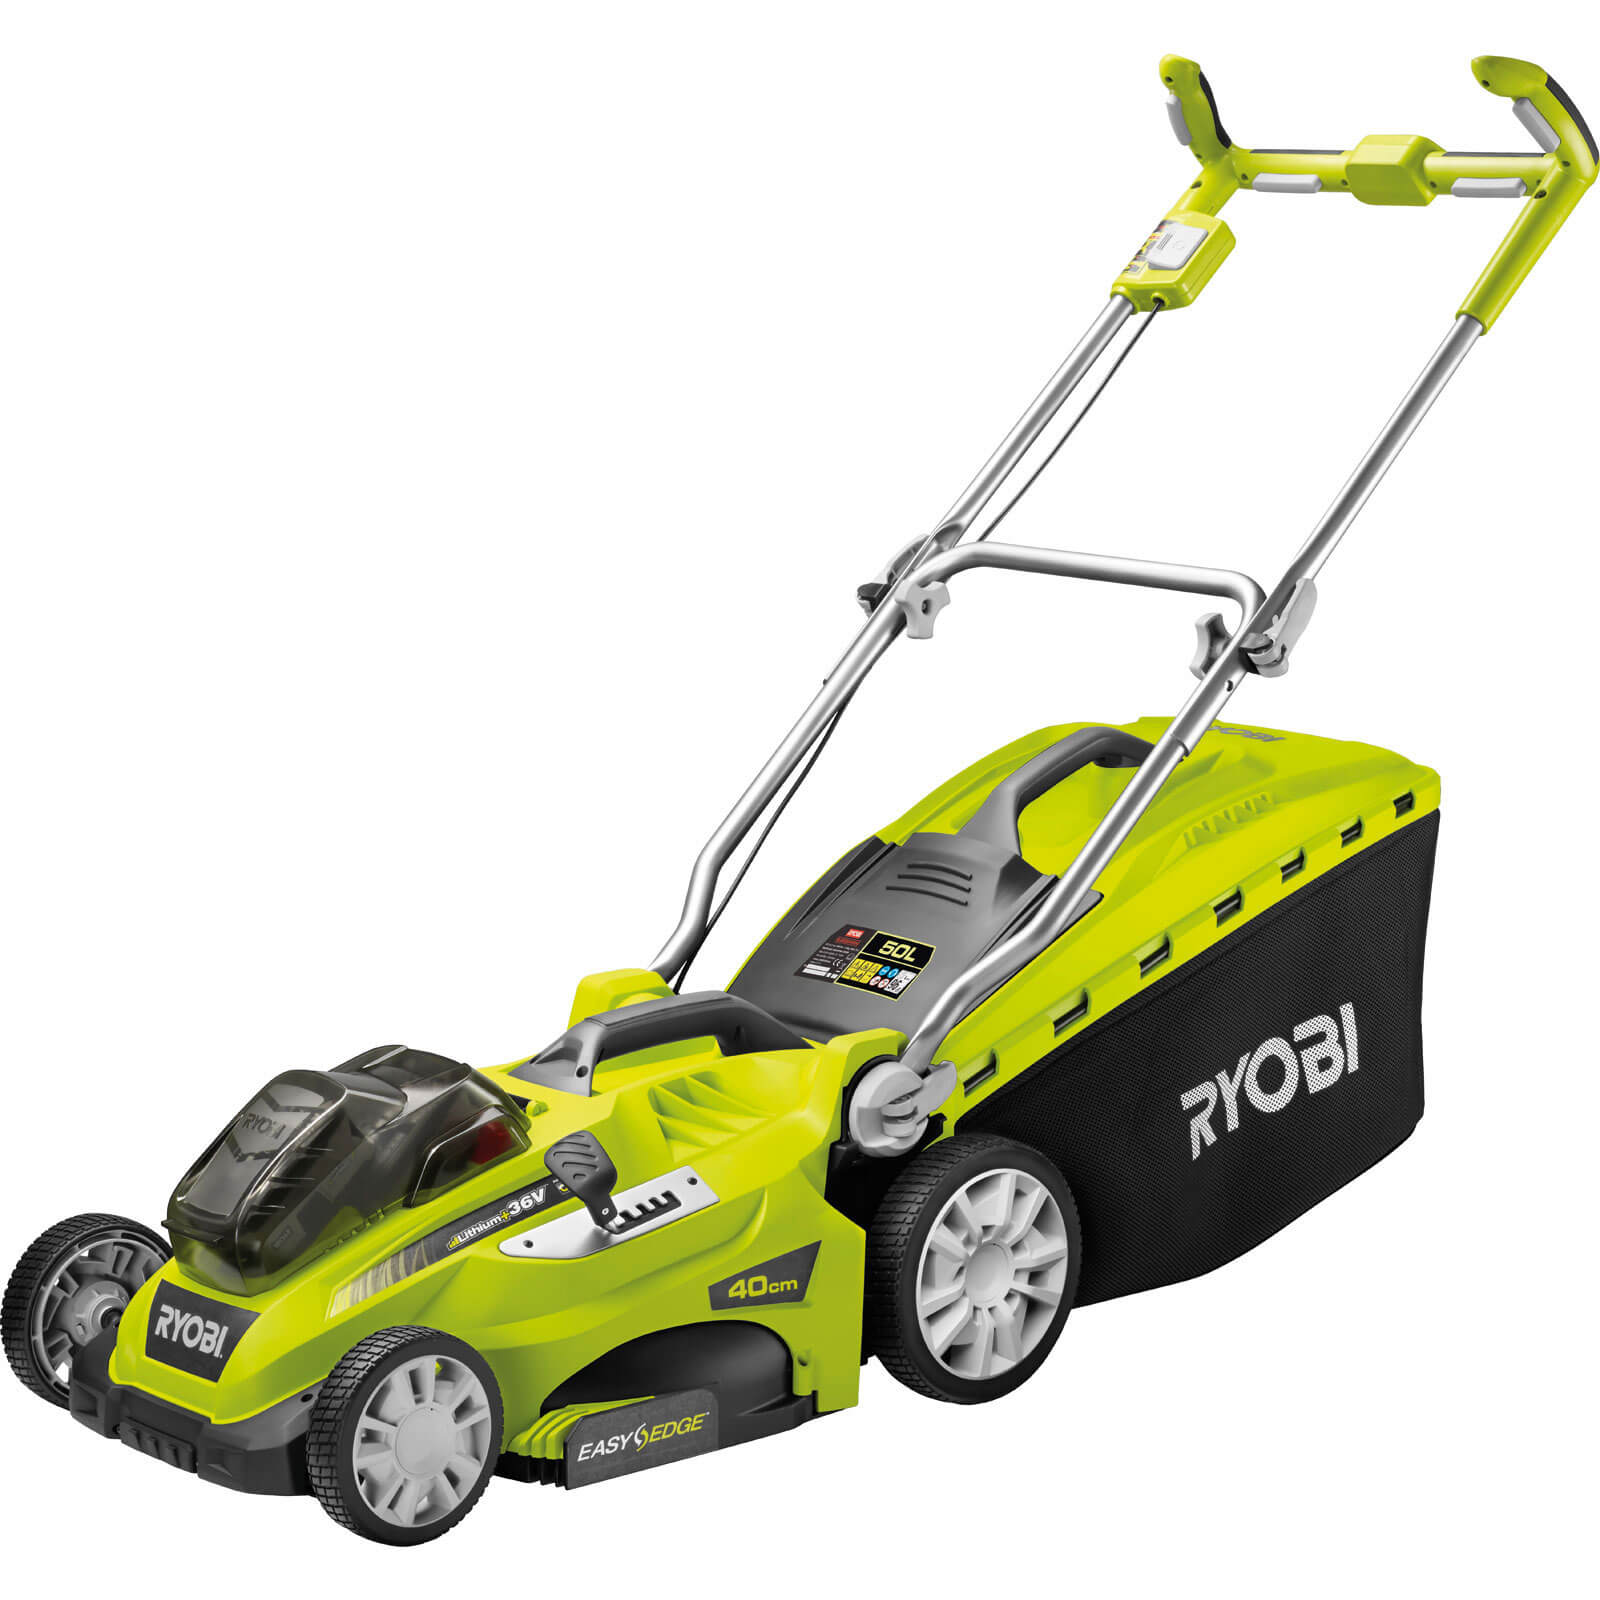 Ryobi RLM18X40H240 ONE+ 36v Cordless Lithium Fusion Lawn Mower 400mm Cut Width with 2 Lithium Ion Batteries 4.0ah